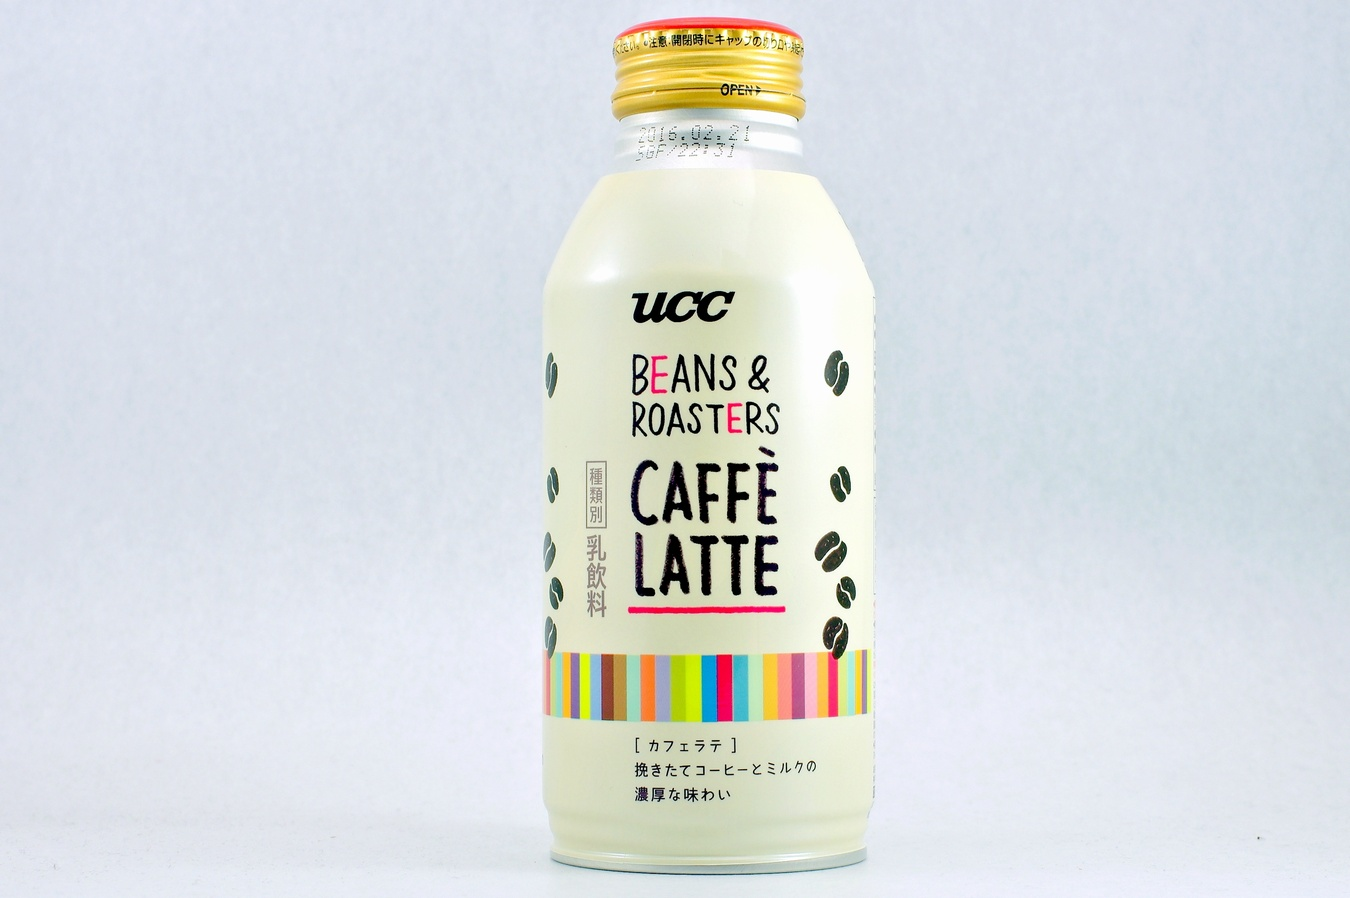 UCC BEANS & ROASTERS CAFFE LATTE